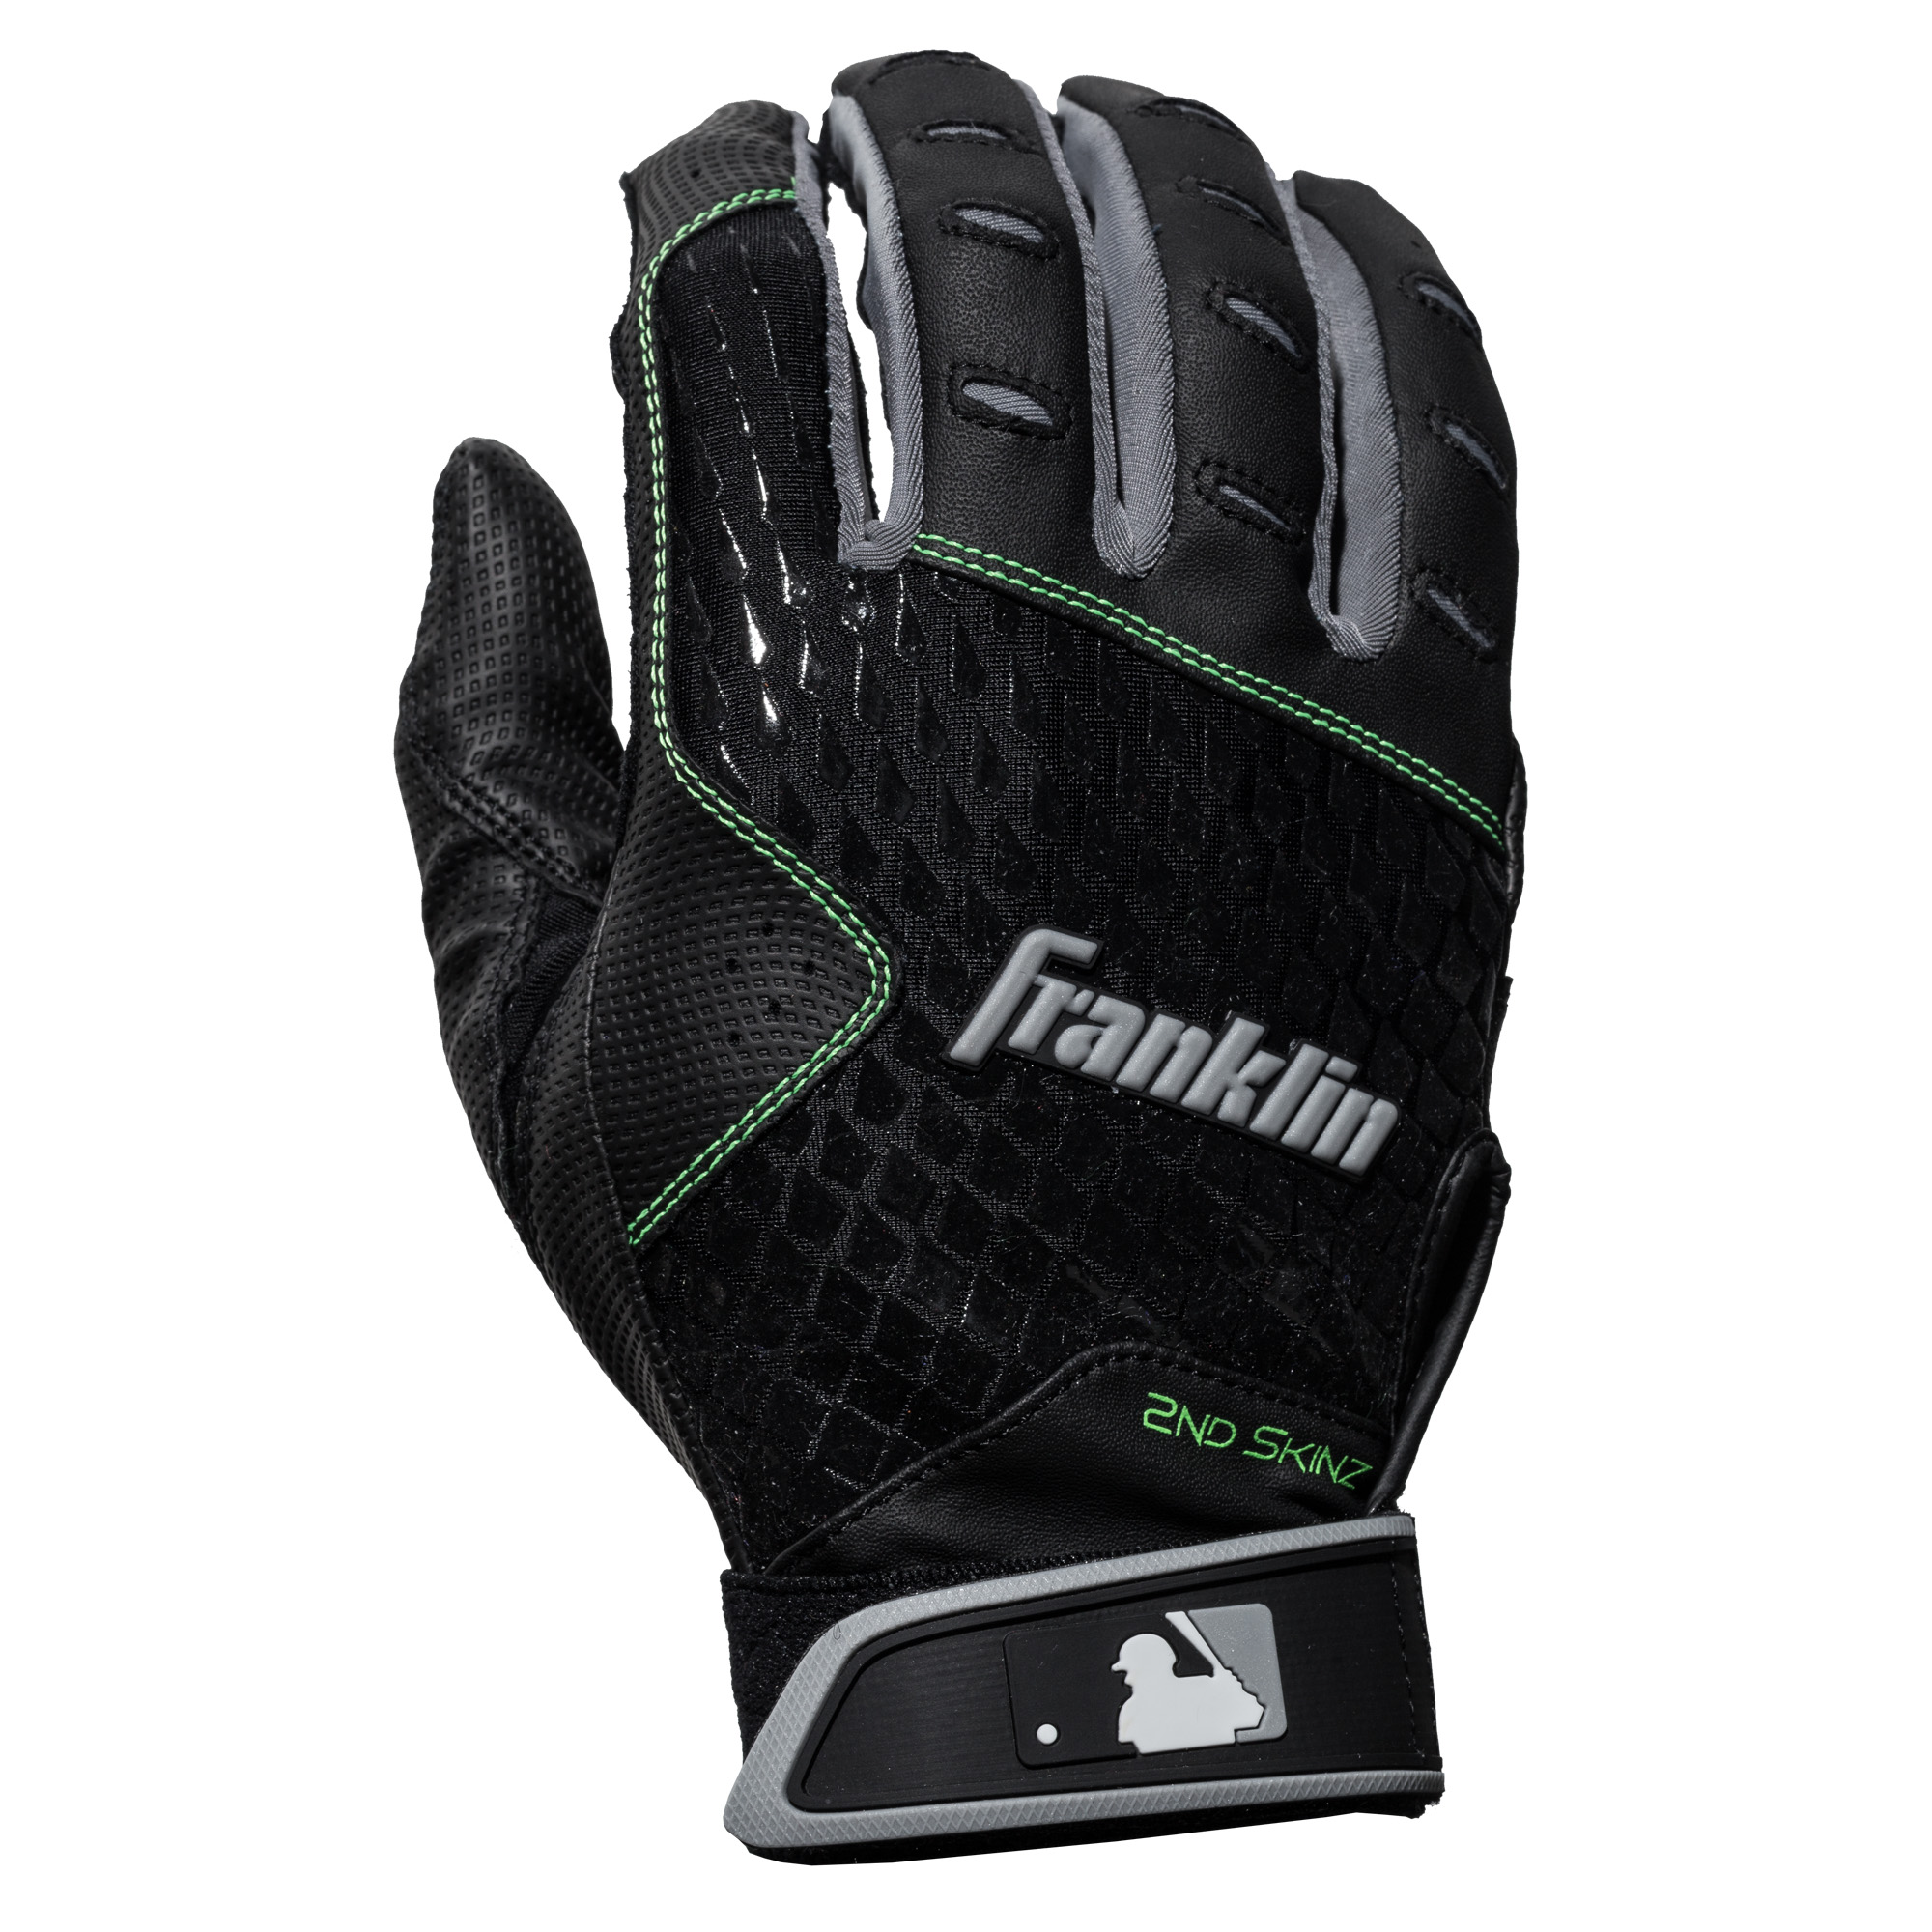 Franklin Sports 2nd-Skinz Batting Gloves Black Black Adult Small by Franklin Sports